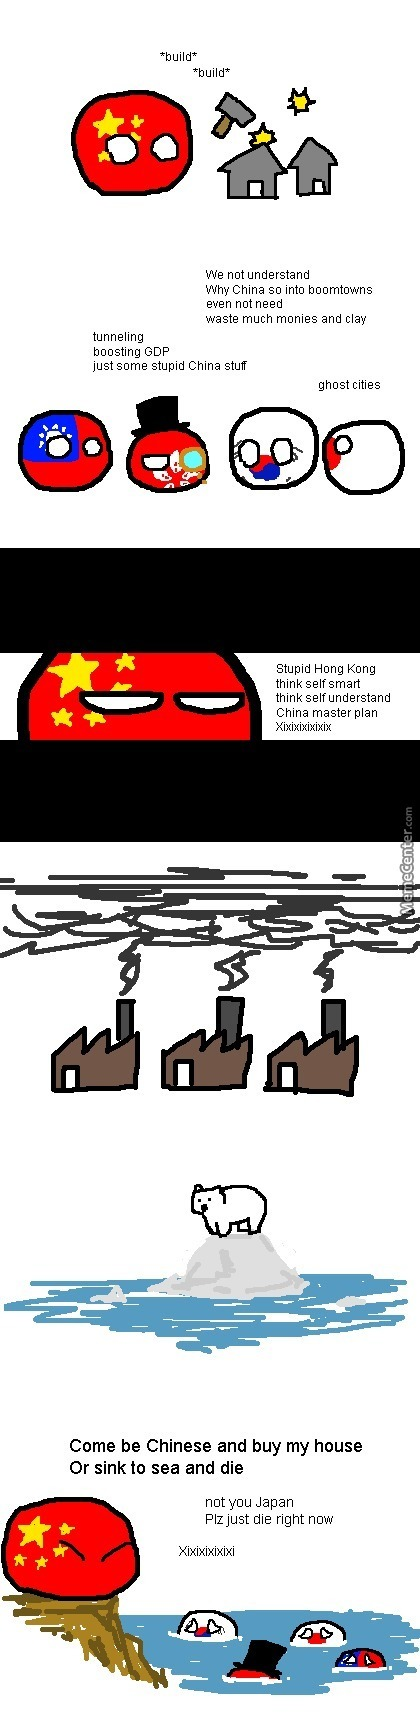 Chinese Future Plan